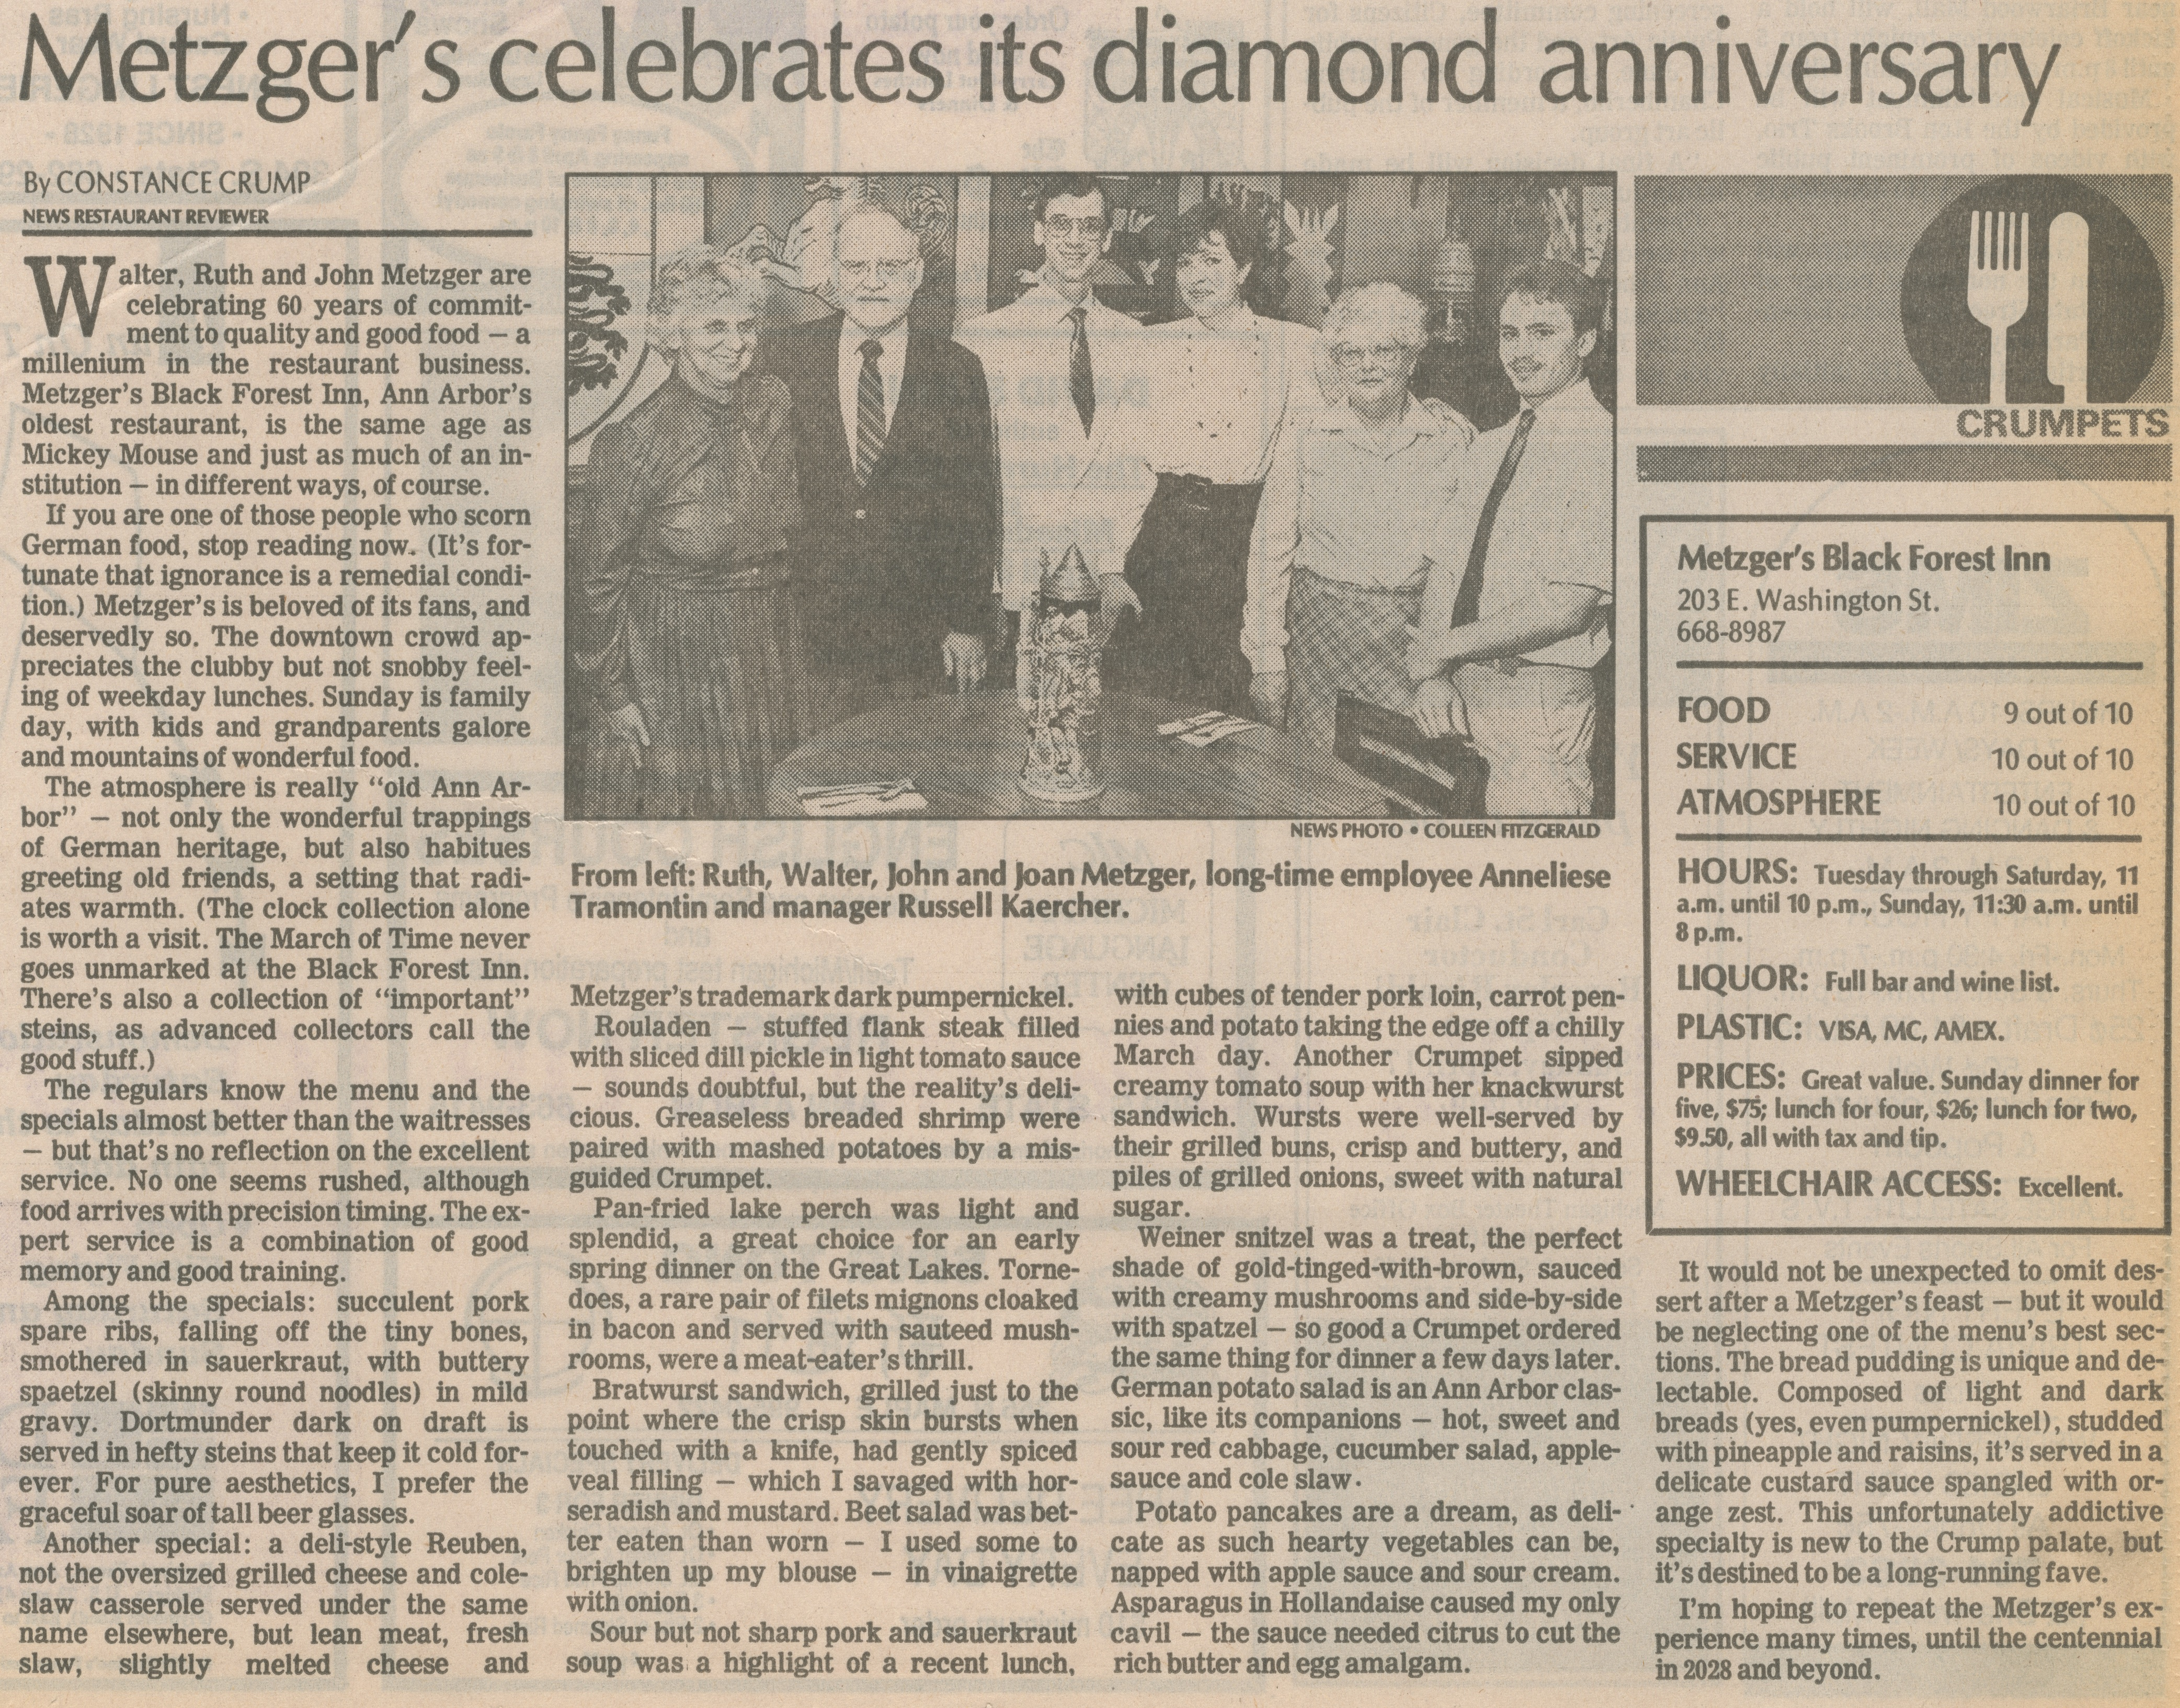 Metzger's Celebrates Its Diamond Anniversary image